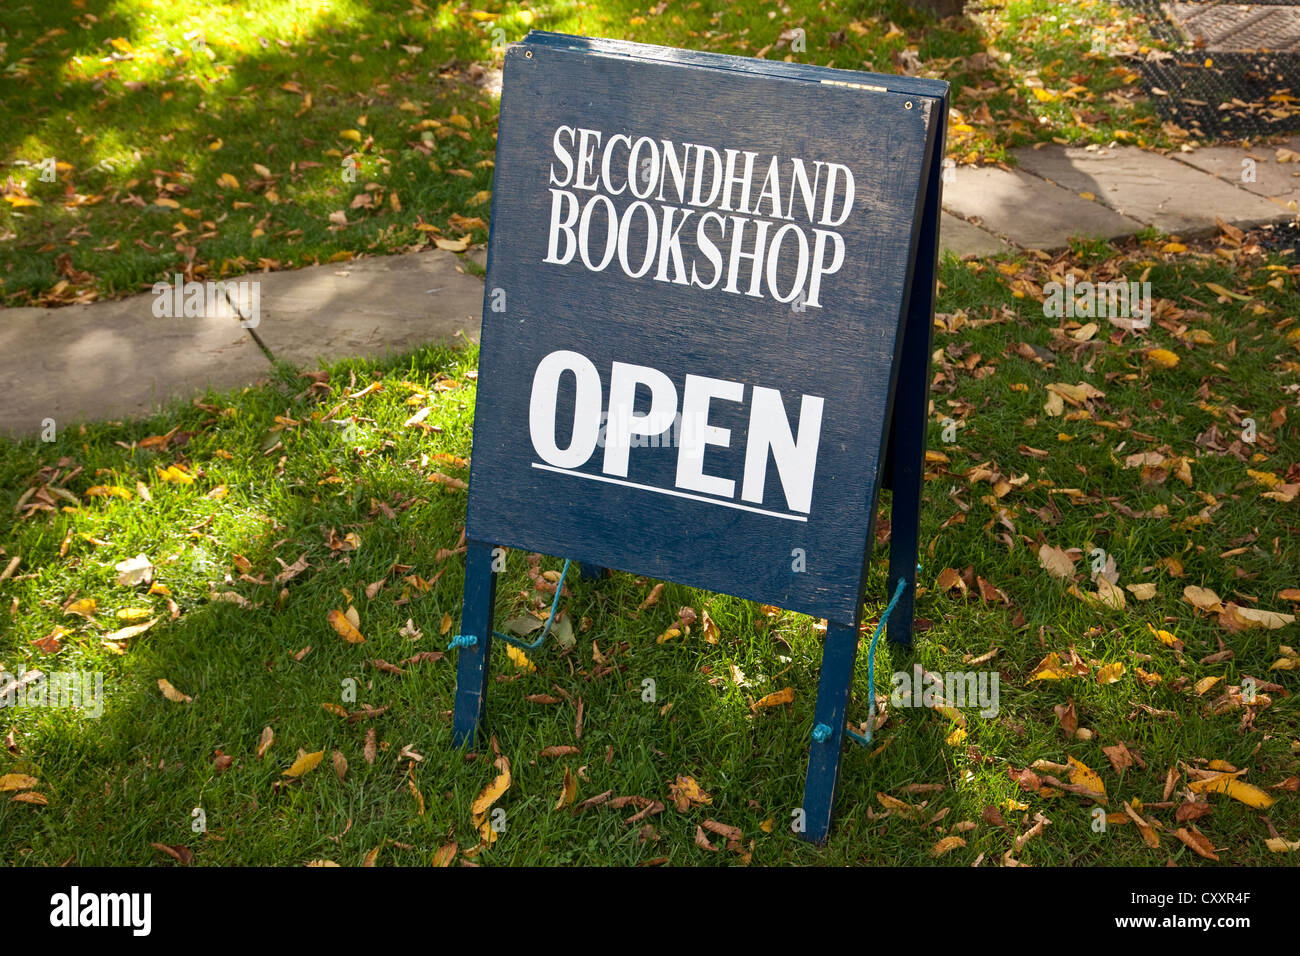 Secondhand Bookshop Open sign Stock Photo